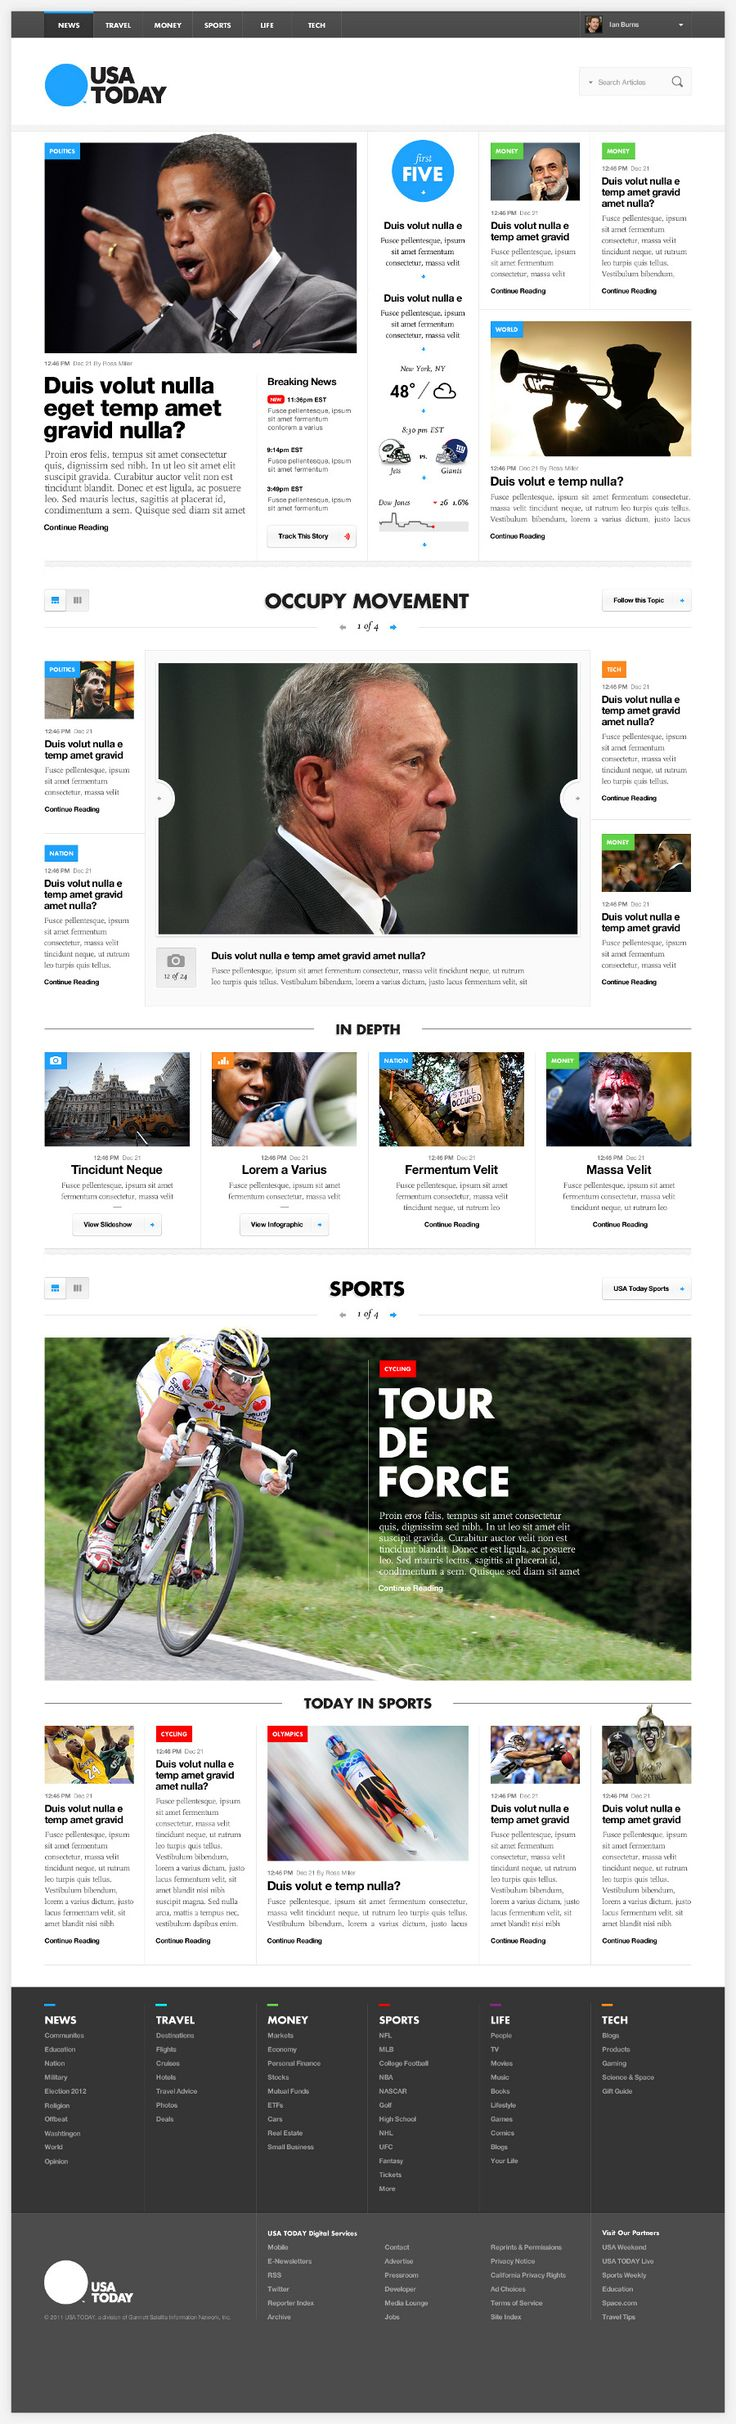 Simple but distinct. USA Today - Outro Lado.